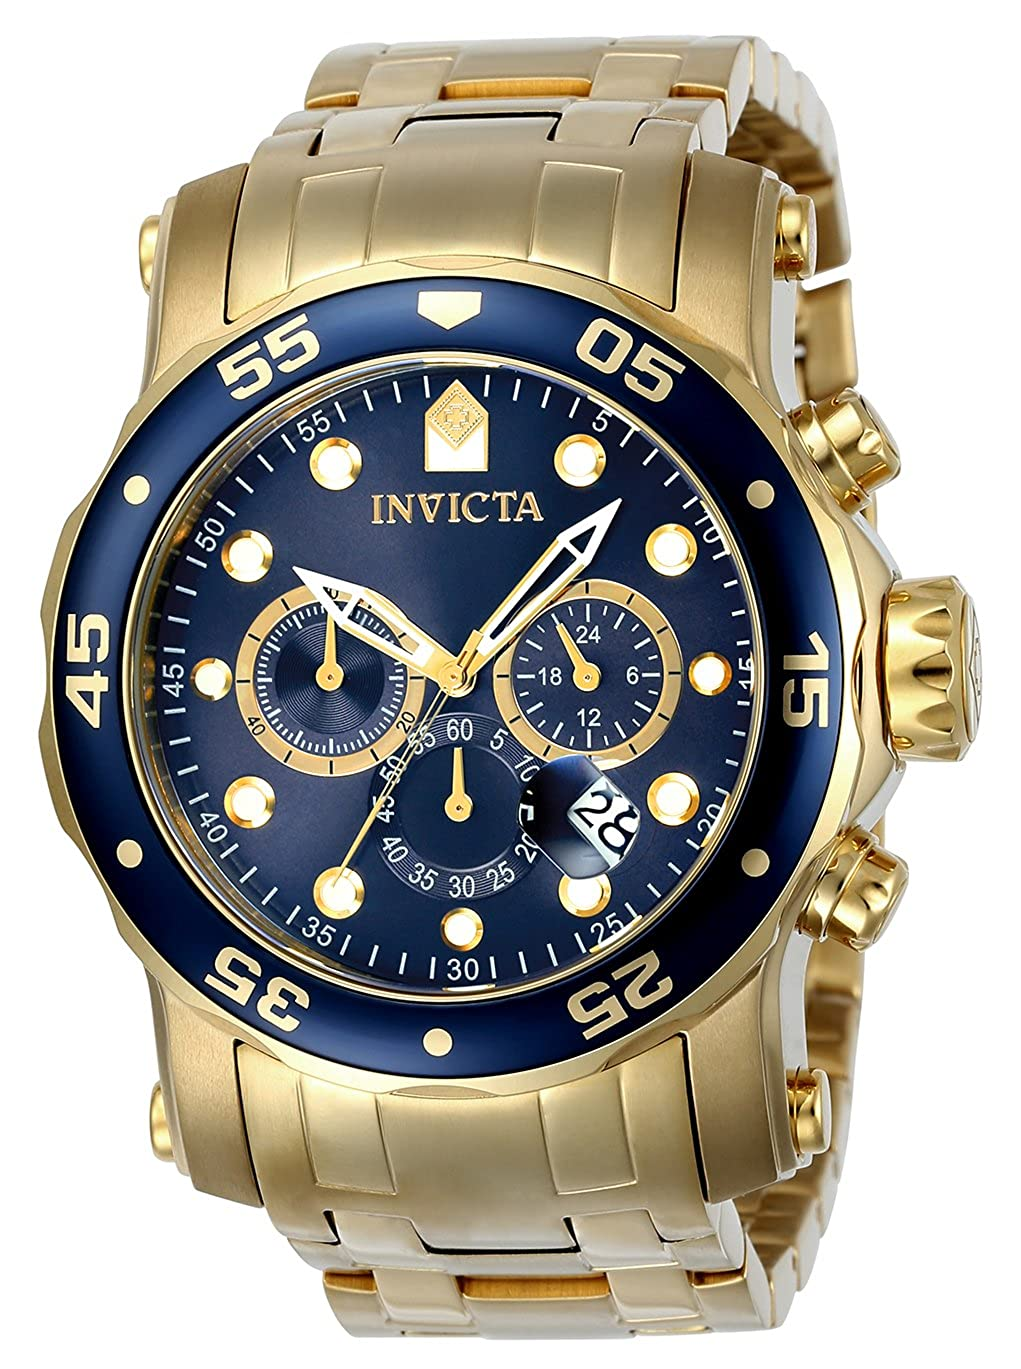 Invicta Men's Pro Diver Quartz Diving Watch with Stainless-Steel Strap, Gold, 26 (Model: 23651)